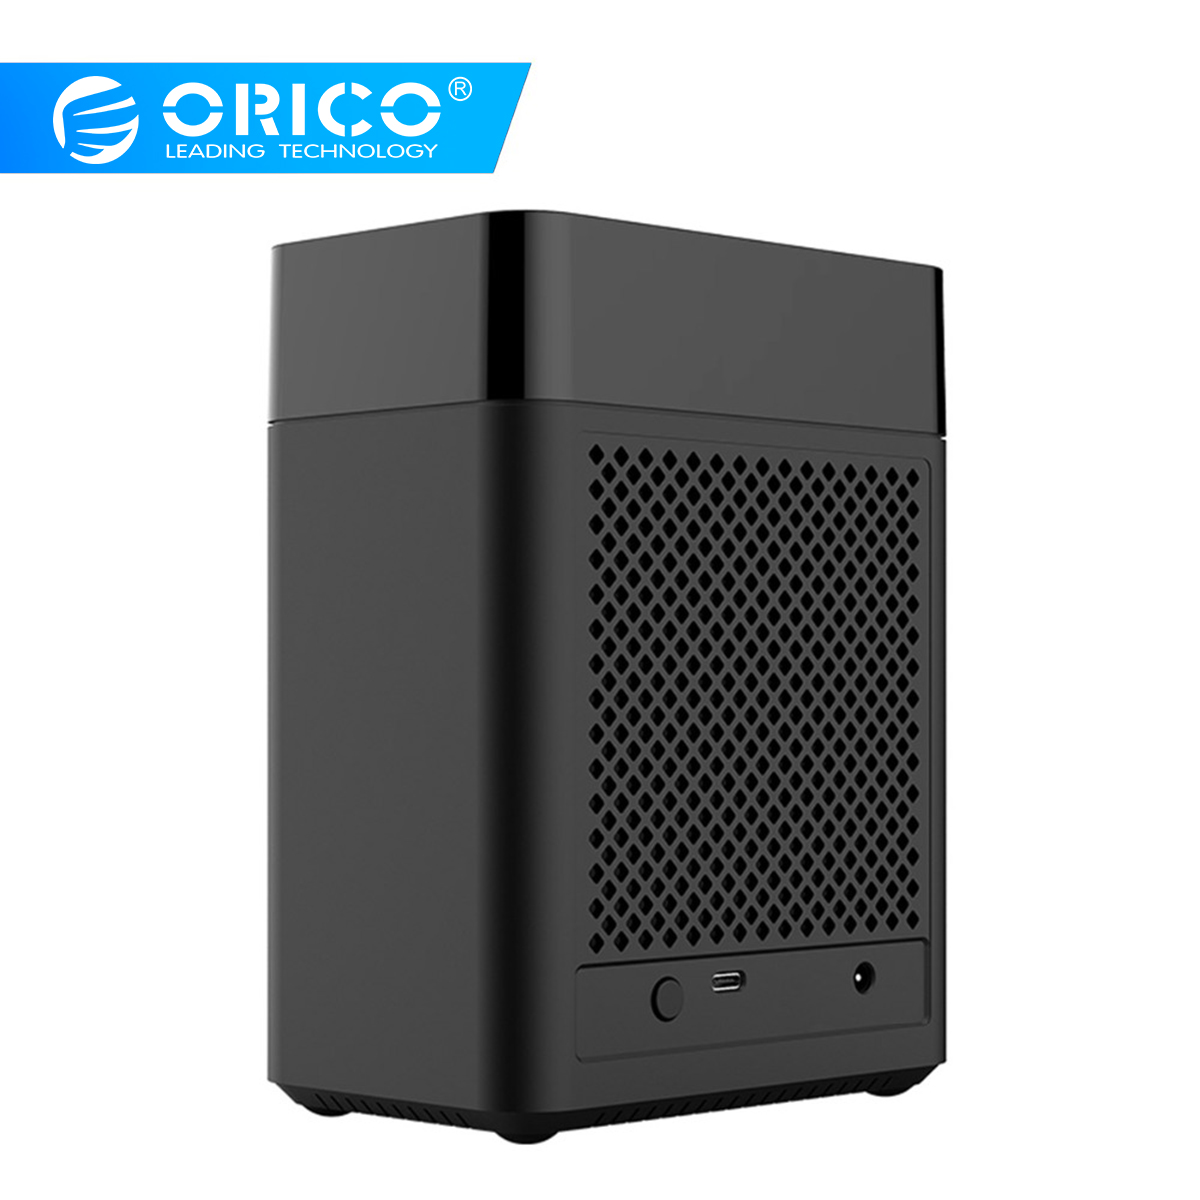 ORICO Dual Bay Magnetic-type 3.5 inch Type-C Hard Drive Enclosure USB3.1 Gen1 5Gbps HDD Case Support UASP 12V4A Power MAX 20TB